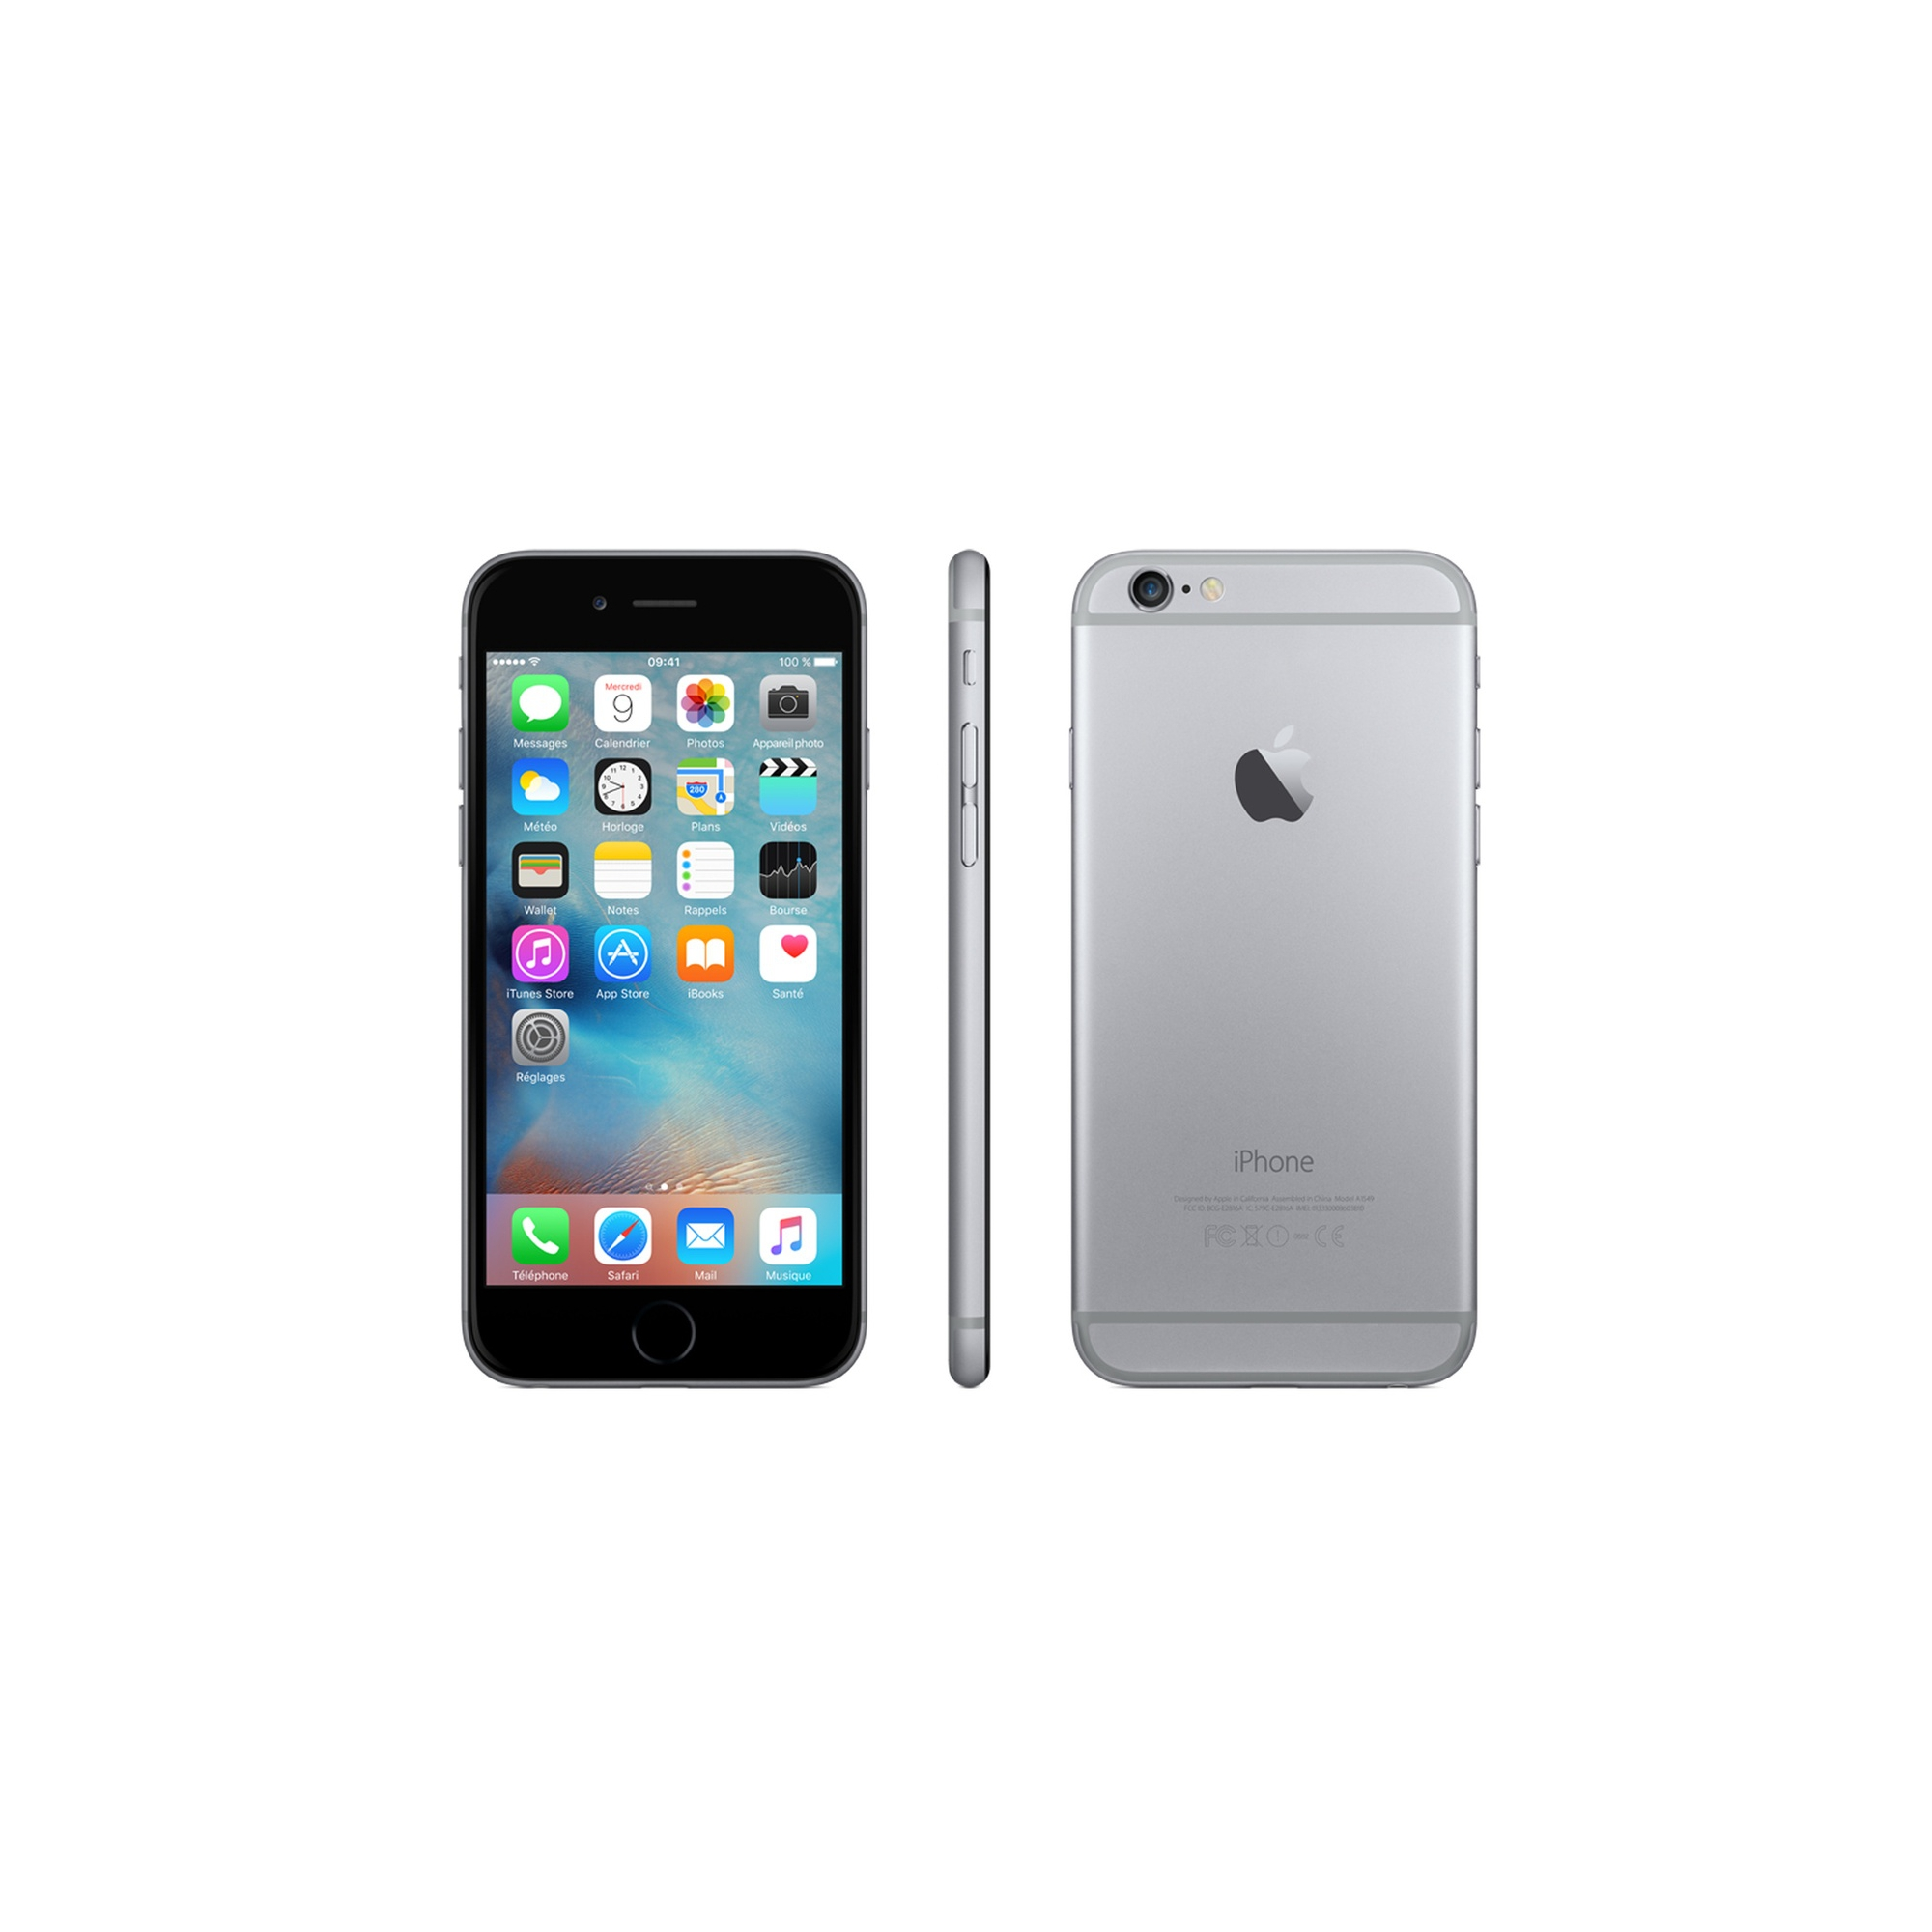 iPhone 6 - Axydis Distributeur SFR Business